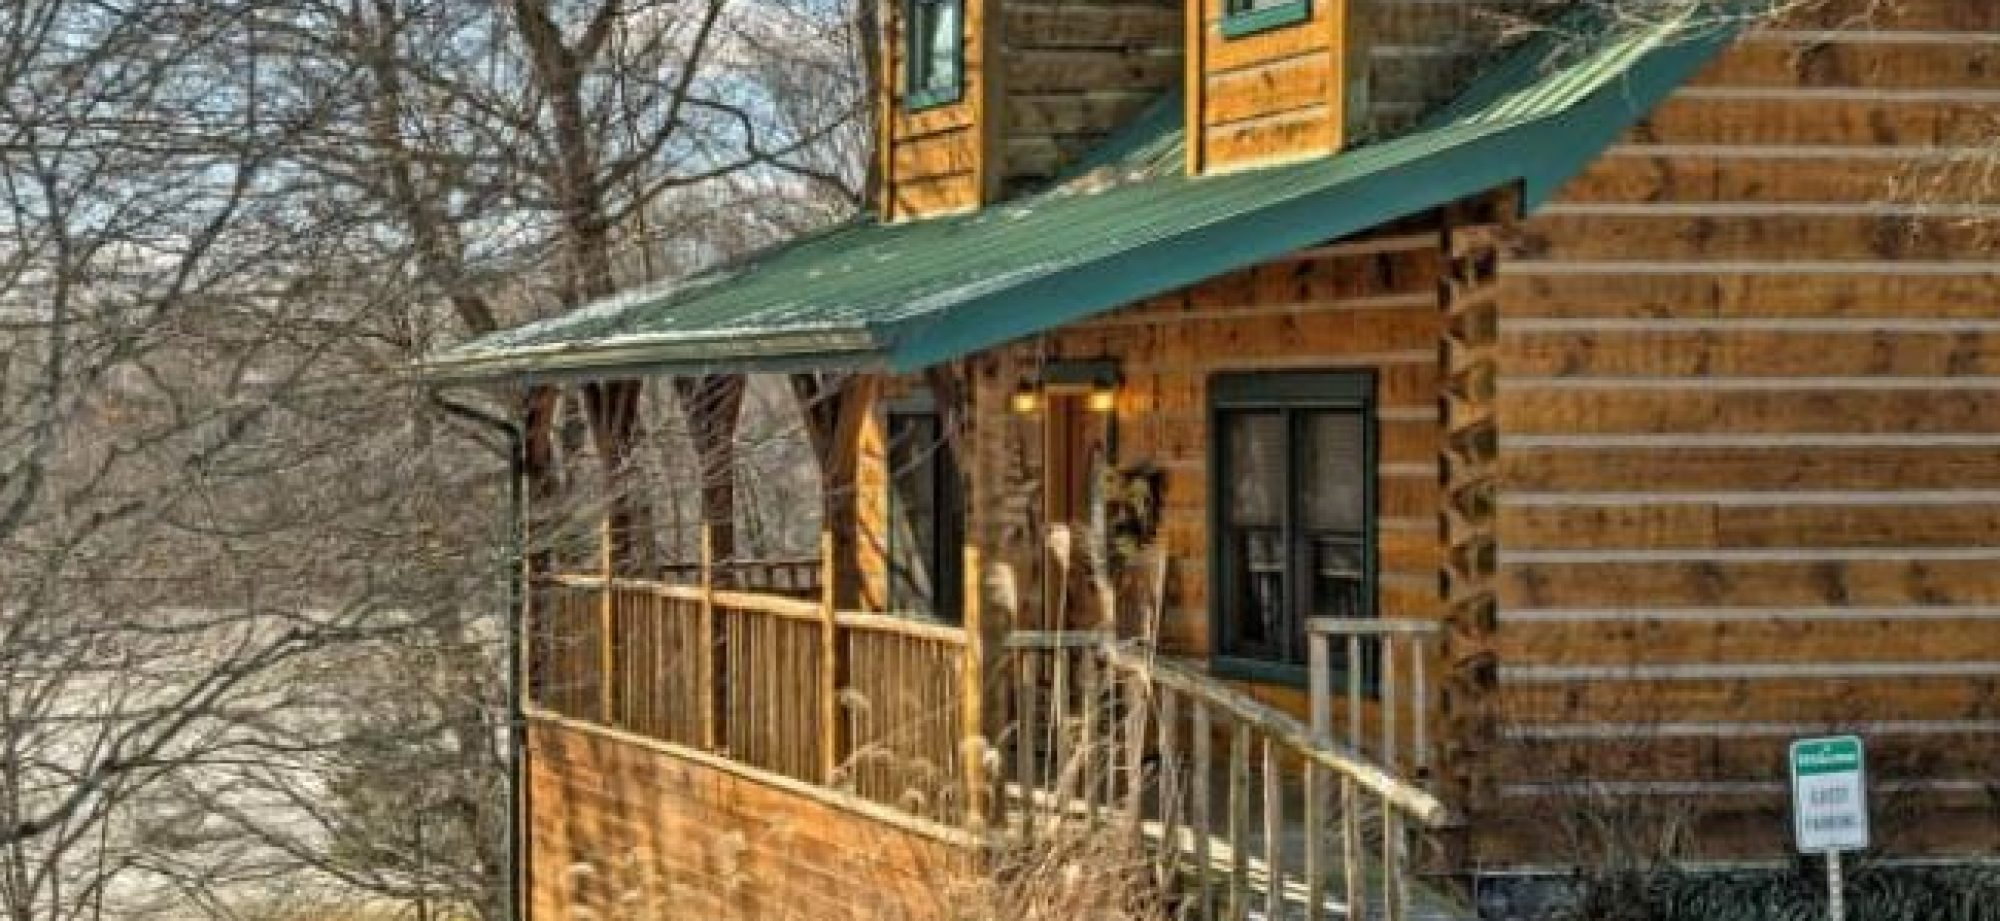 Vacation Cabins For You